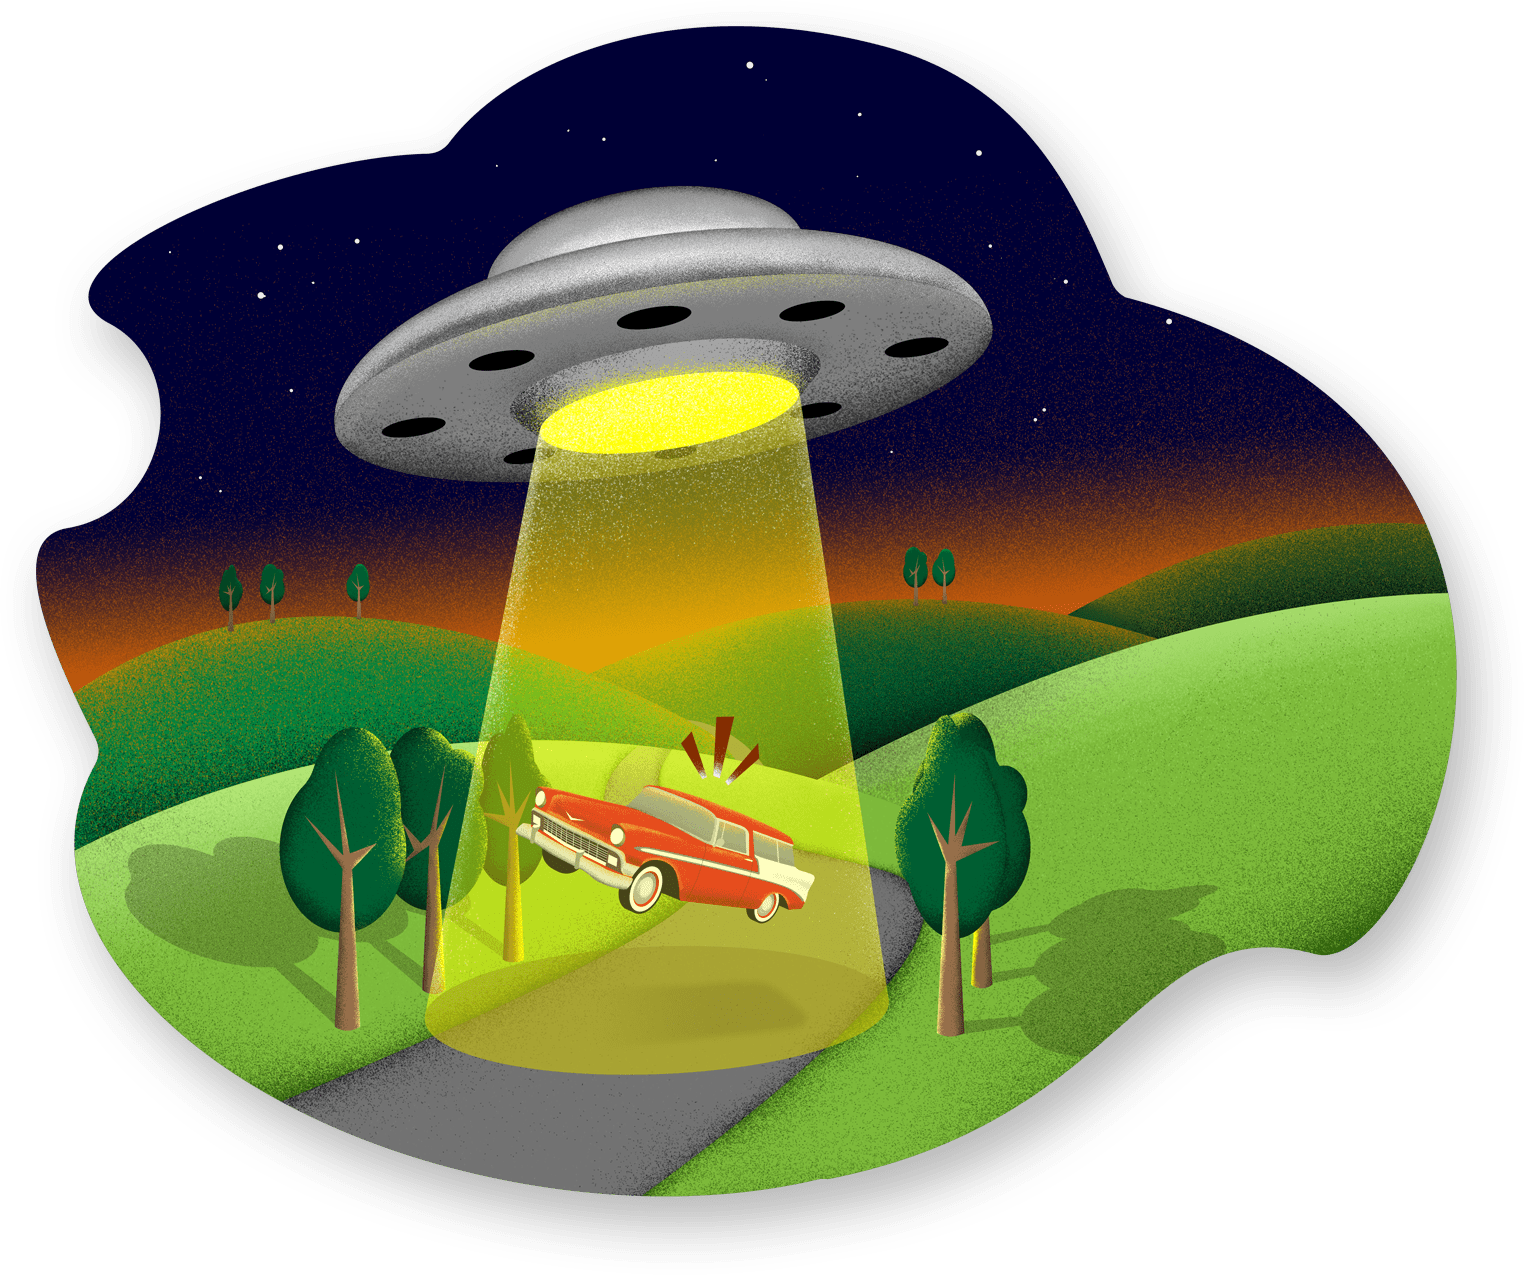 a ufo beaning up a car